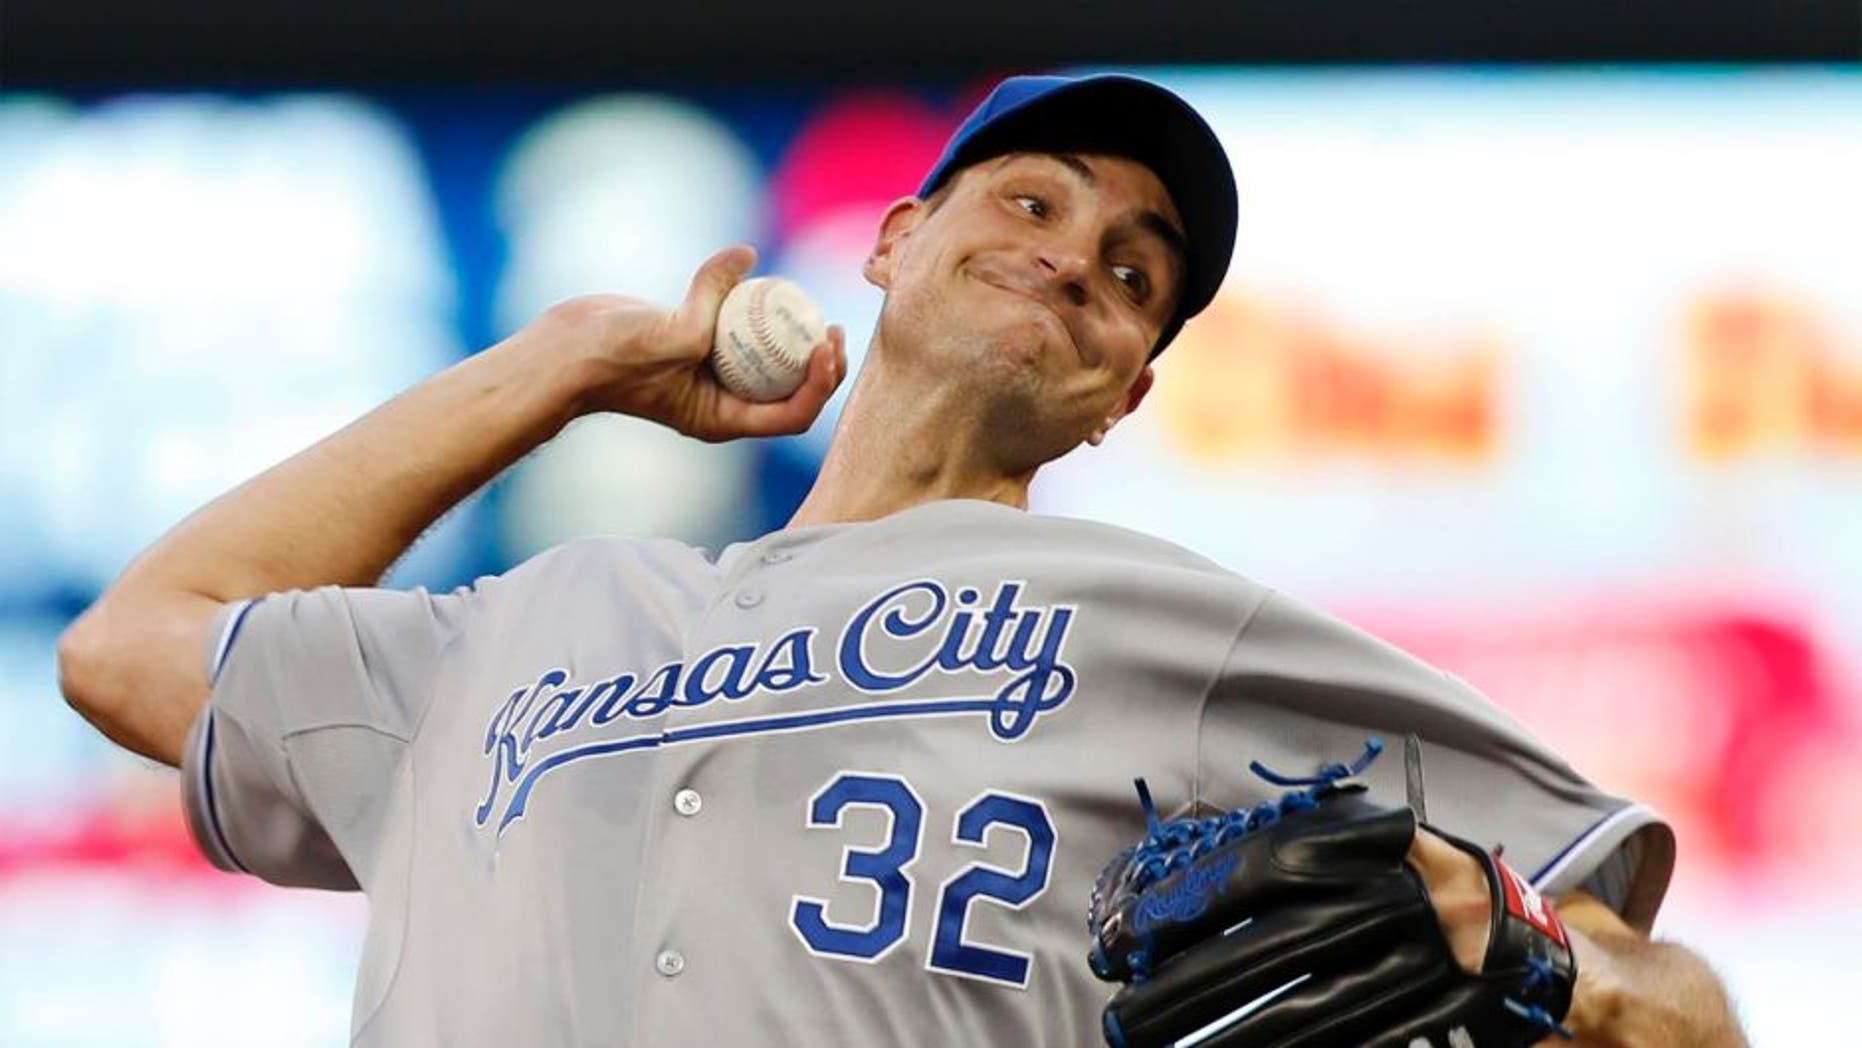 Kansas City Royals pitcher Chris Young throws against the Minnesota Twins during the first inning Tuesday, June 9, 2015, in Minneapolis.